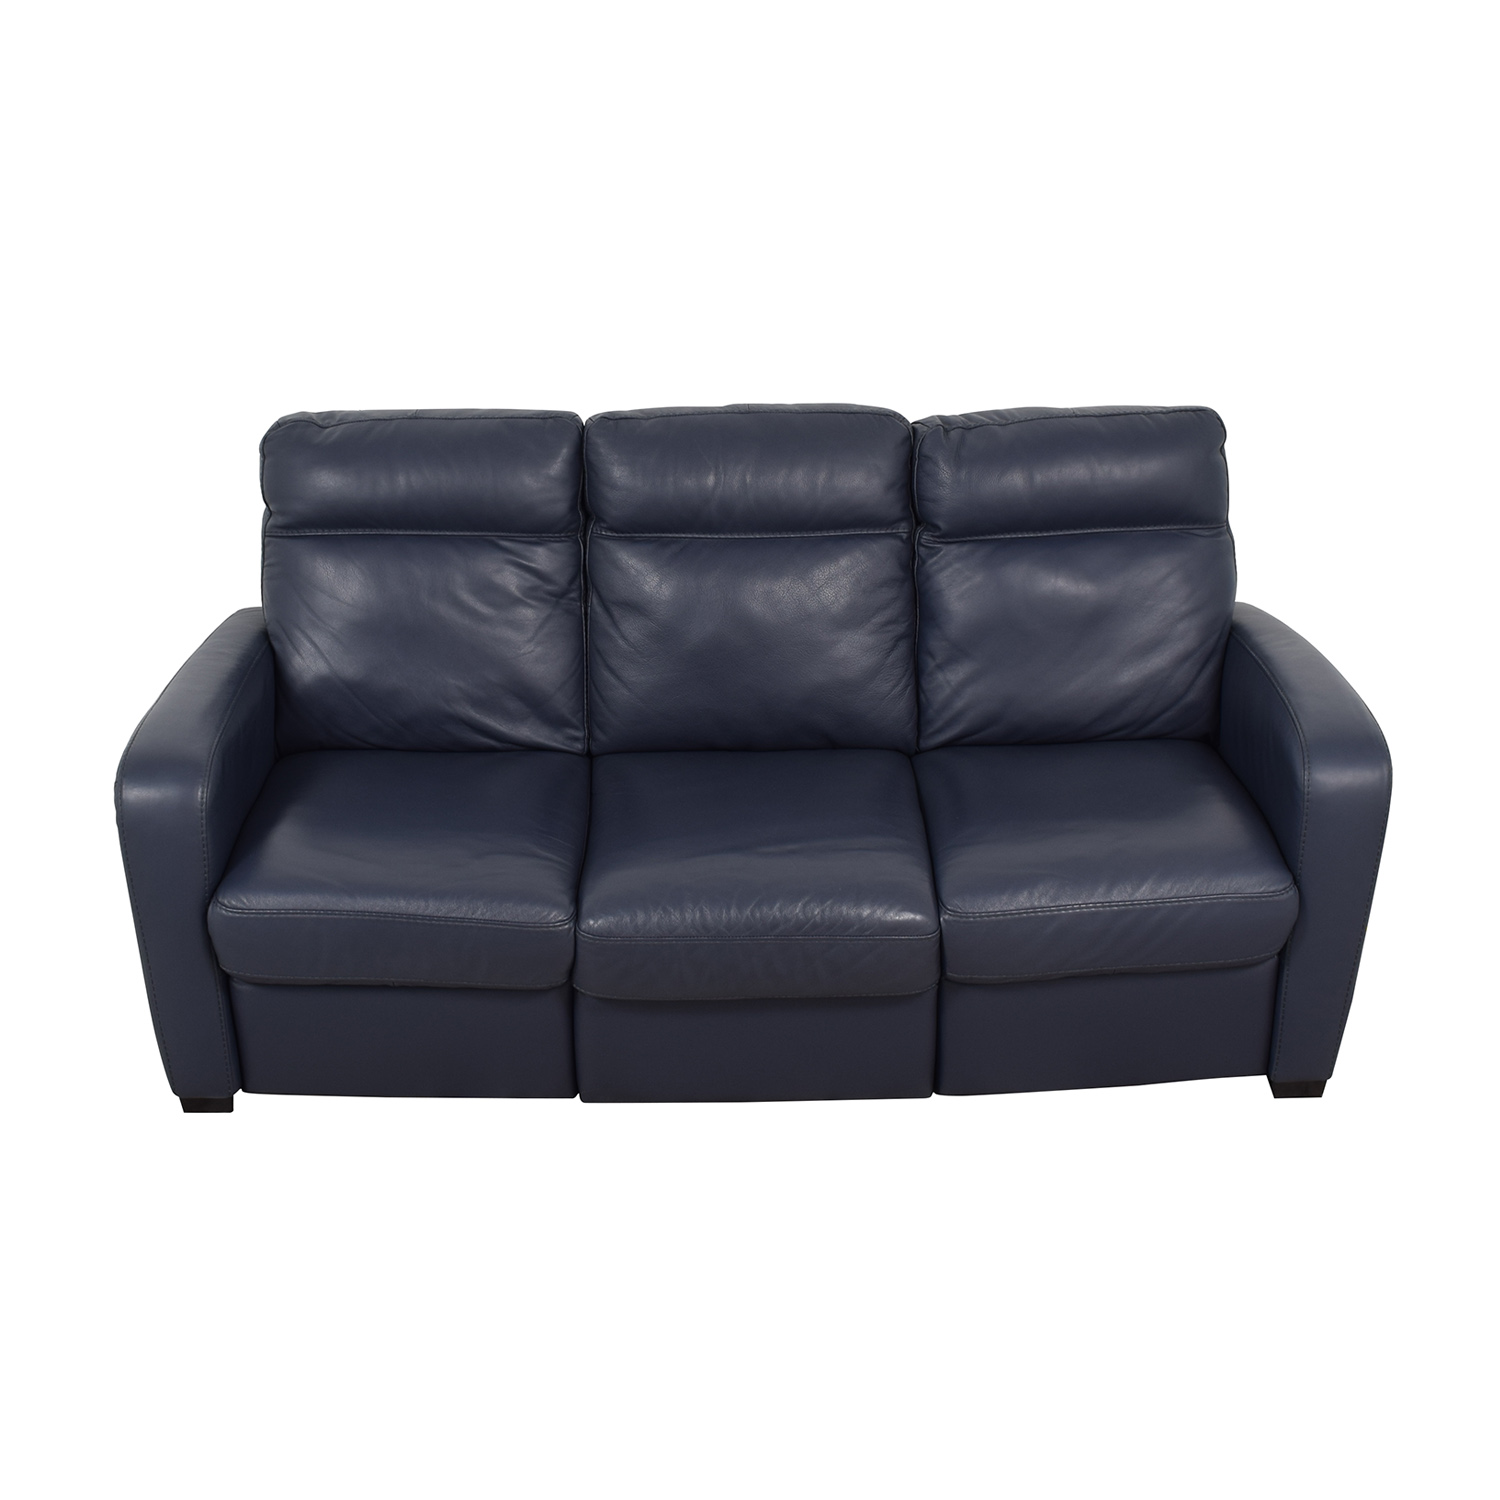 90 Off Natuzzi Natuzzi Rodrigo Navy Leather Power